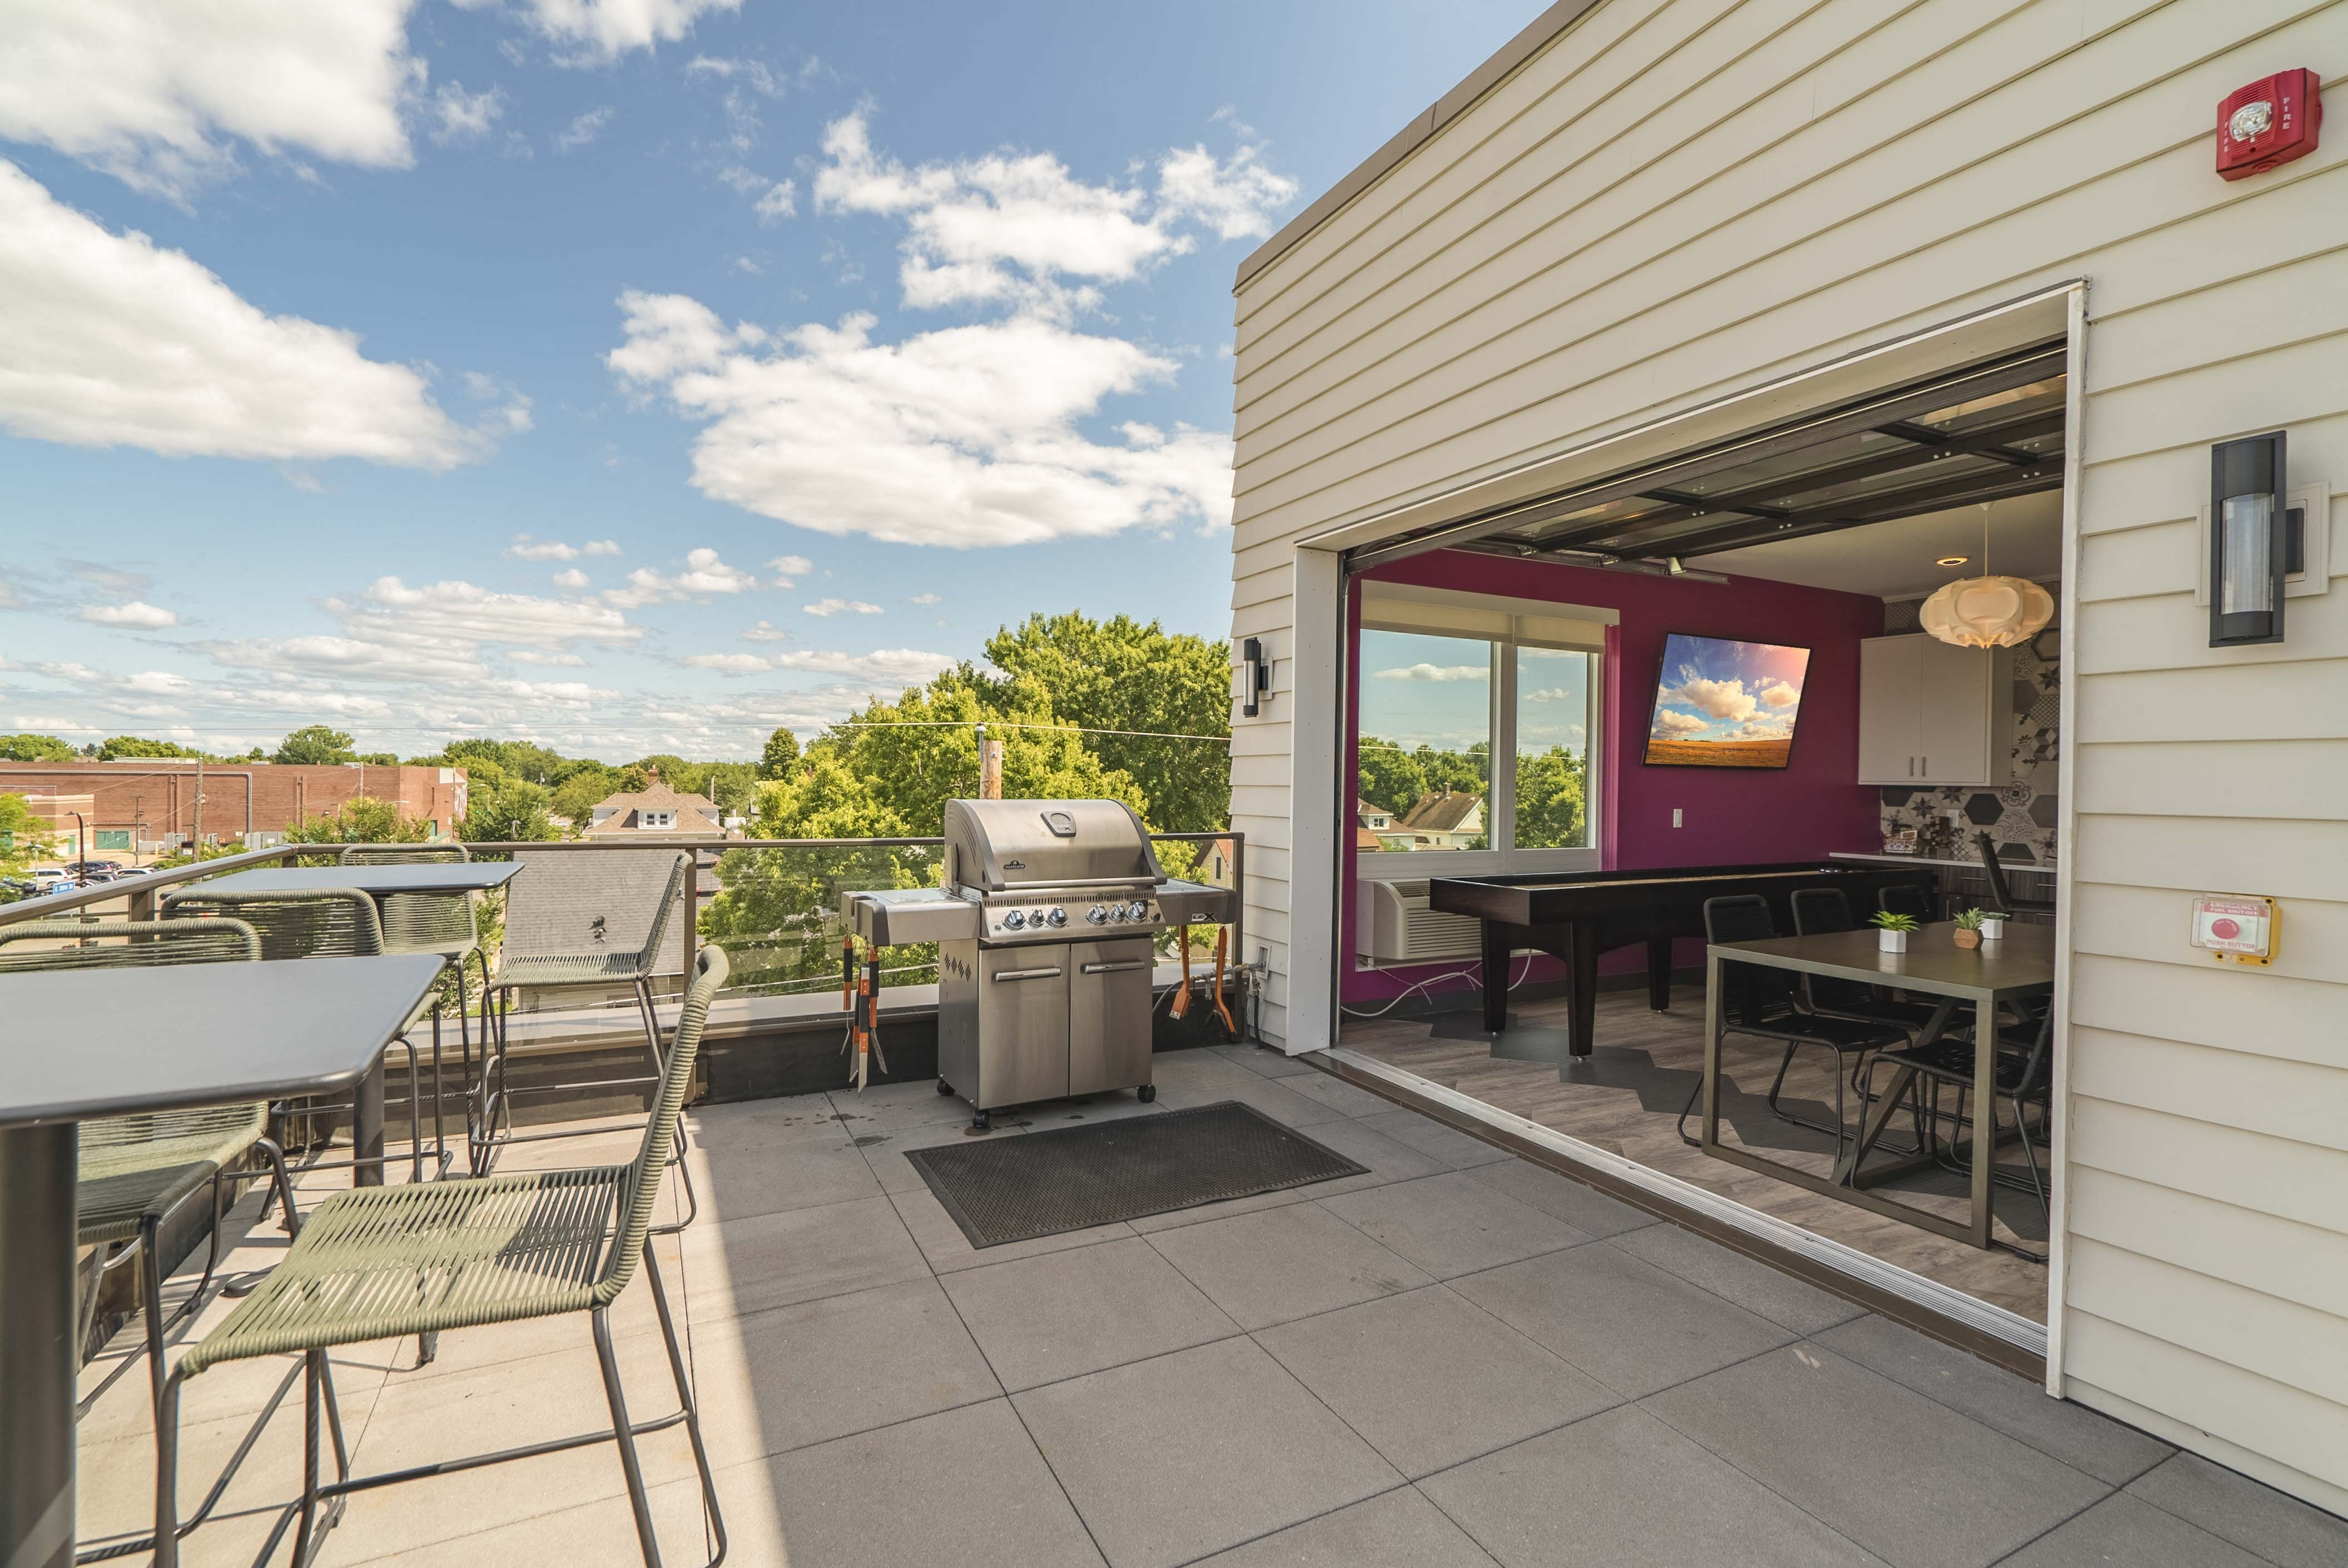 Rooftop community room opens to the patio and deck at The Central apartments near downtown Minneapolis MN 55408